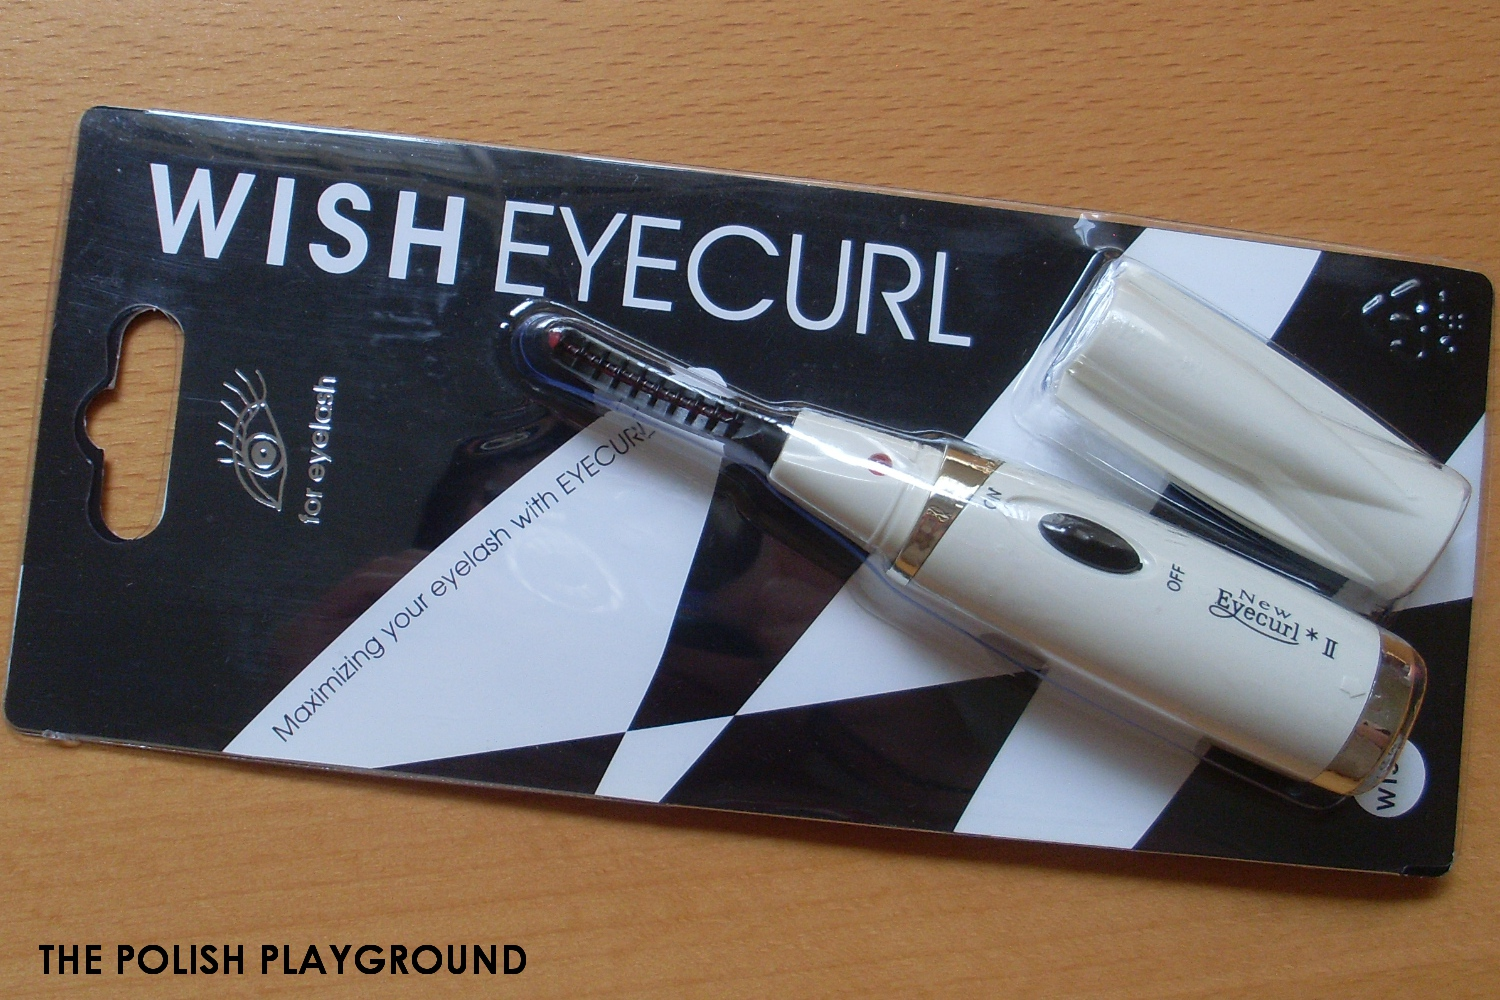 Wishtrend - Wish Eyecurl Review